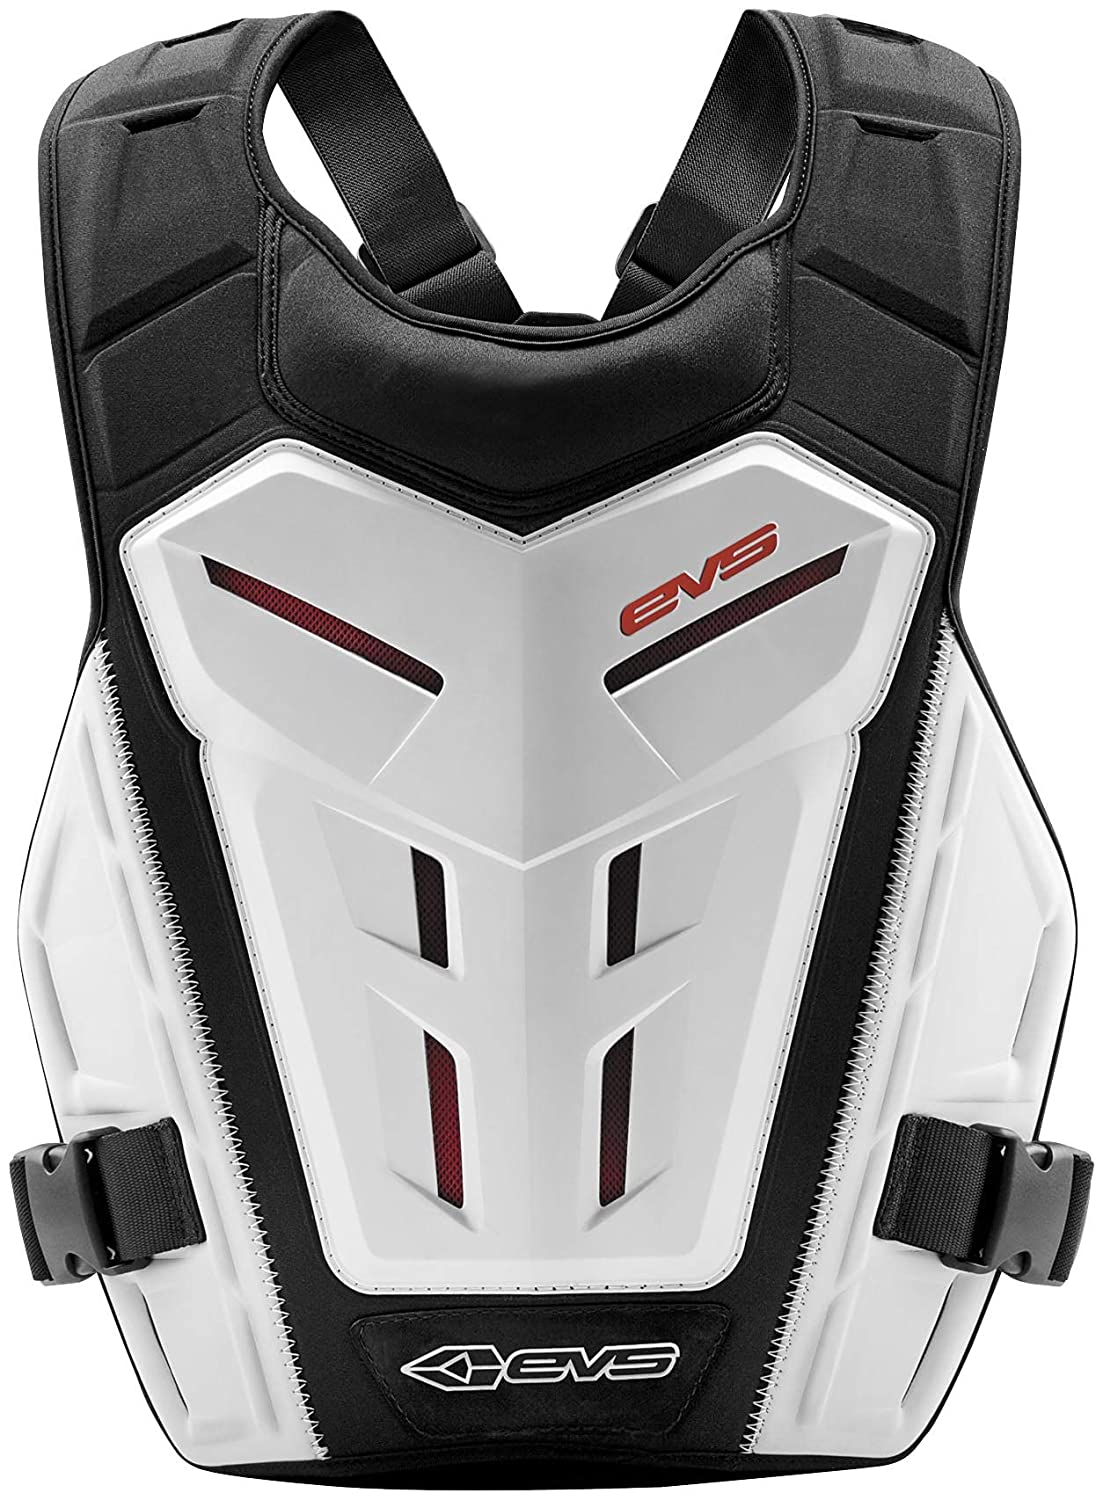 EVS 2018 Revo 4 Protector Large//X-Large White